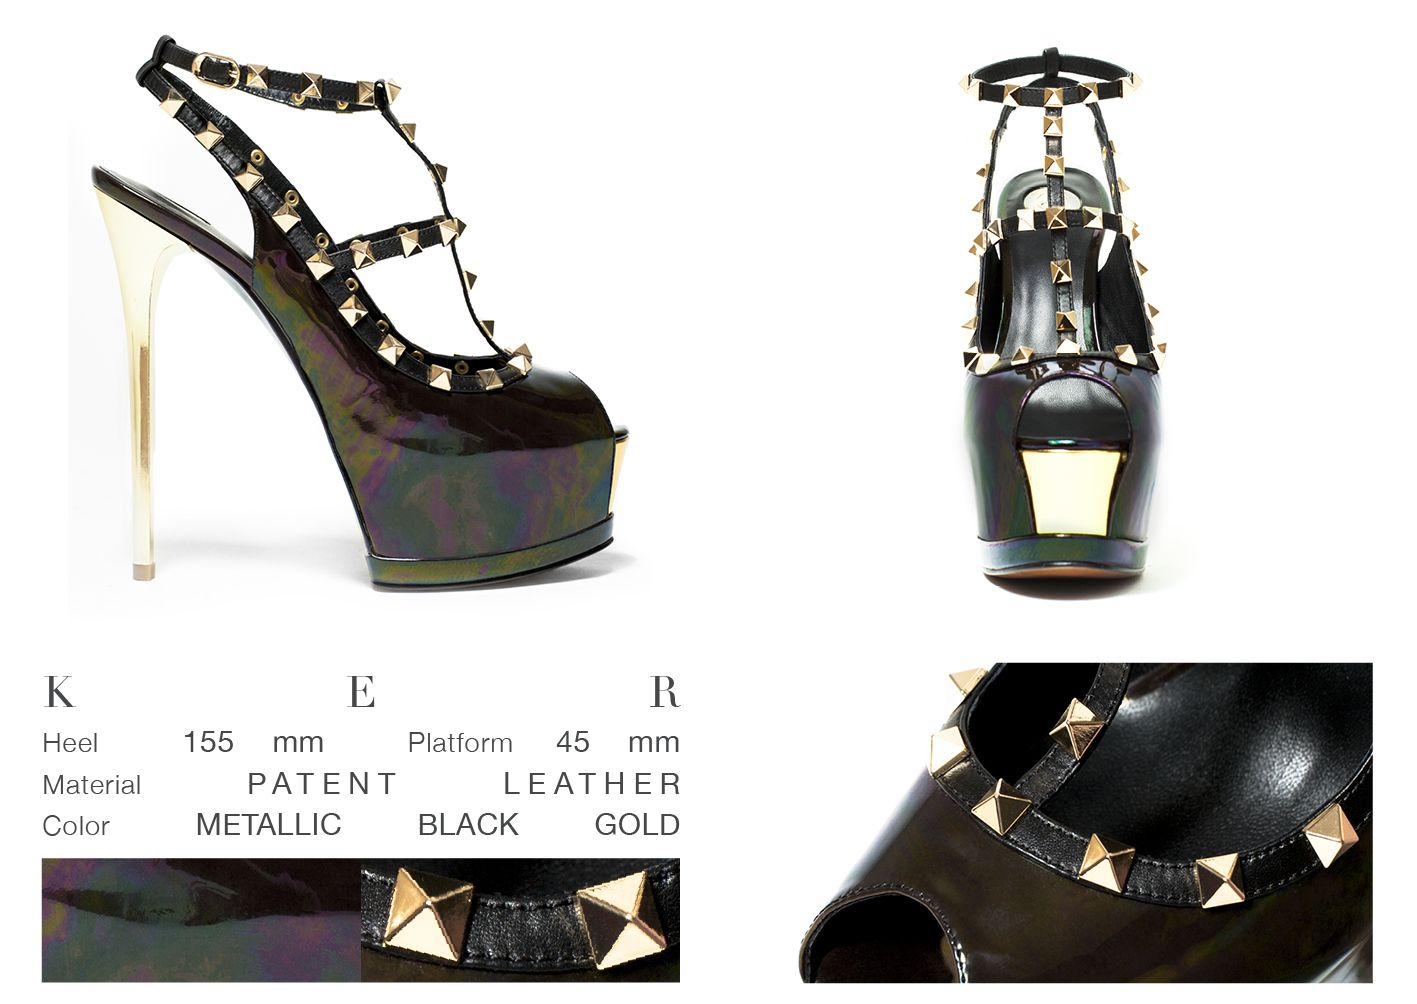 No words for this sexy and extreme beauty, that will leave the world speechless. Is not only an incredibly elegant sandal but also a piece of art. Metallic black patent leather and golden taches, all together in this unsurpassable high heel.   ONLINE STORE: bymareshoes.com